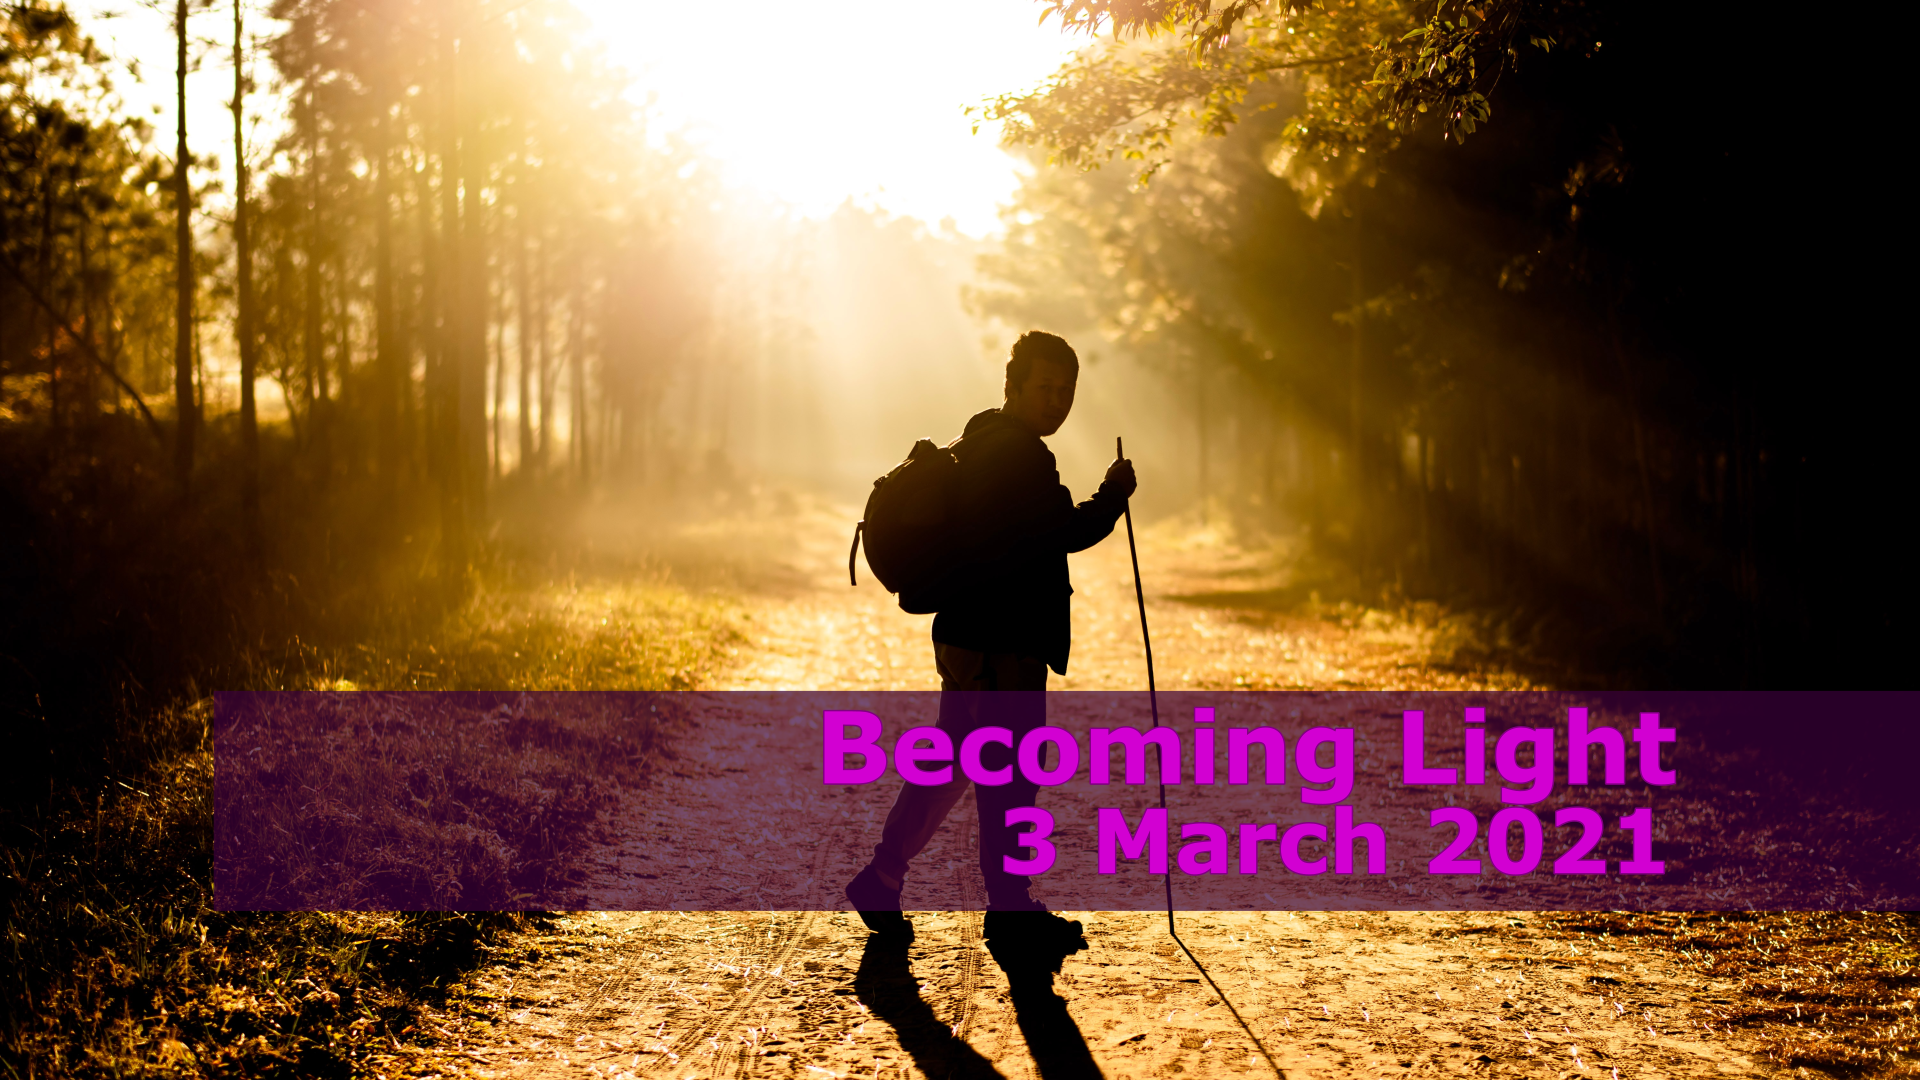 <span class='p-name'>Becoming Light — 3 March 2021 Devotional</span>